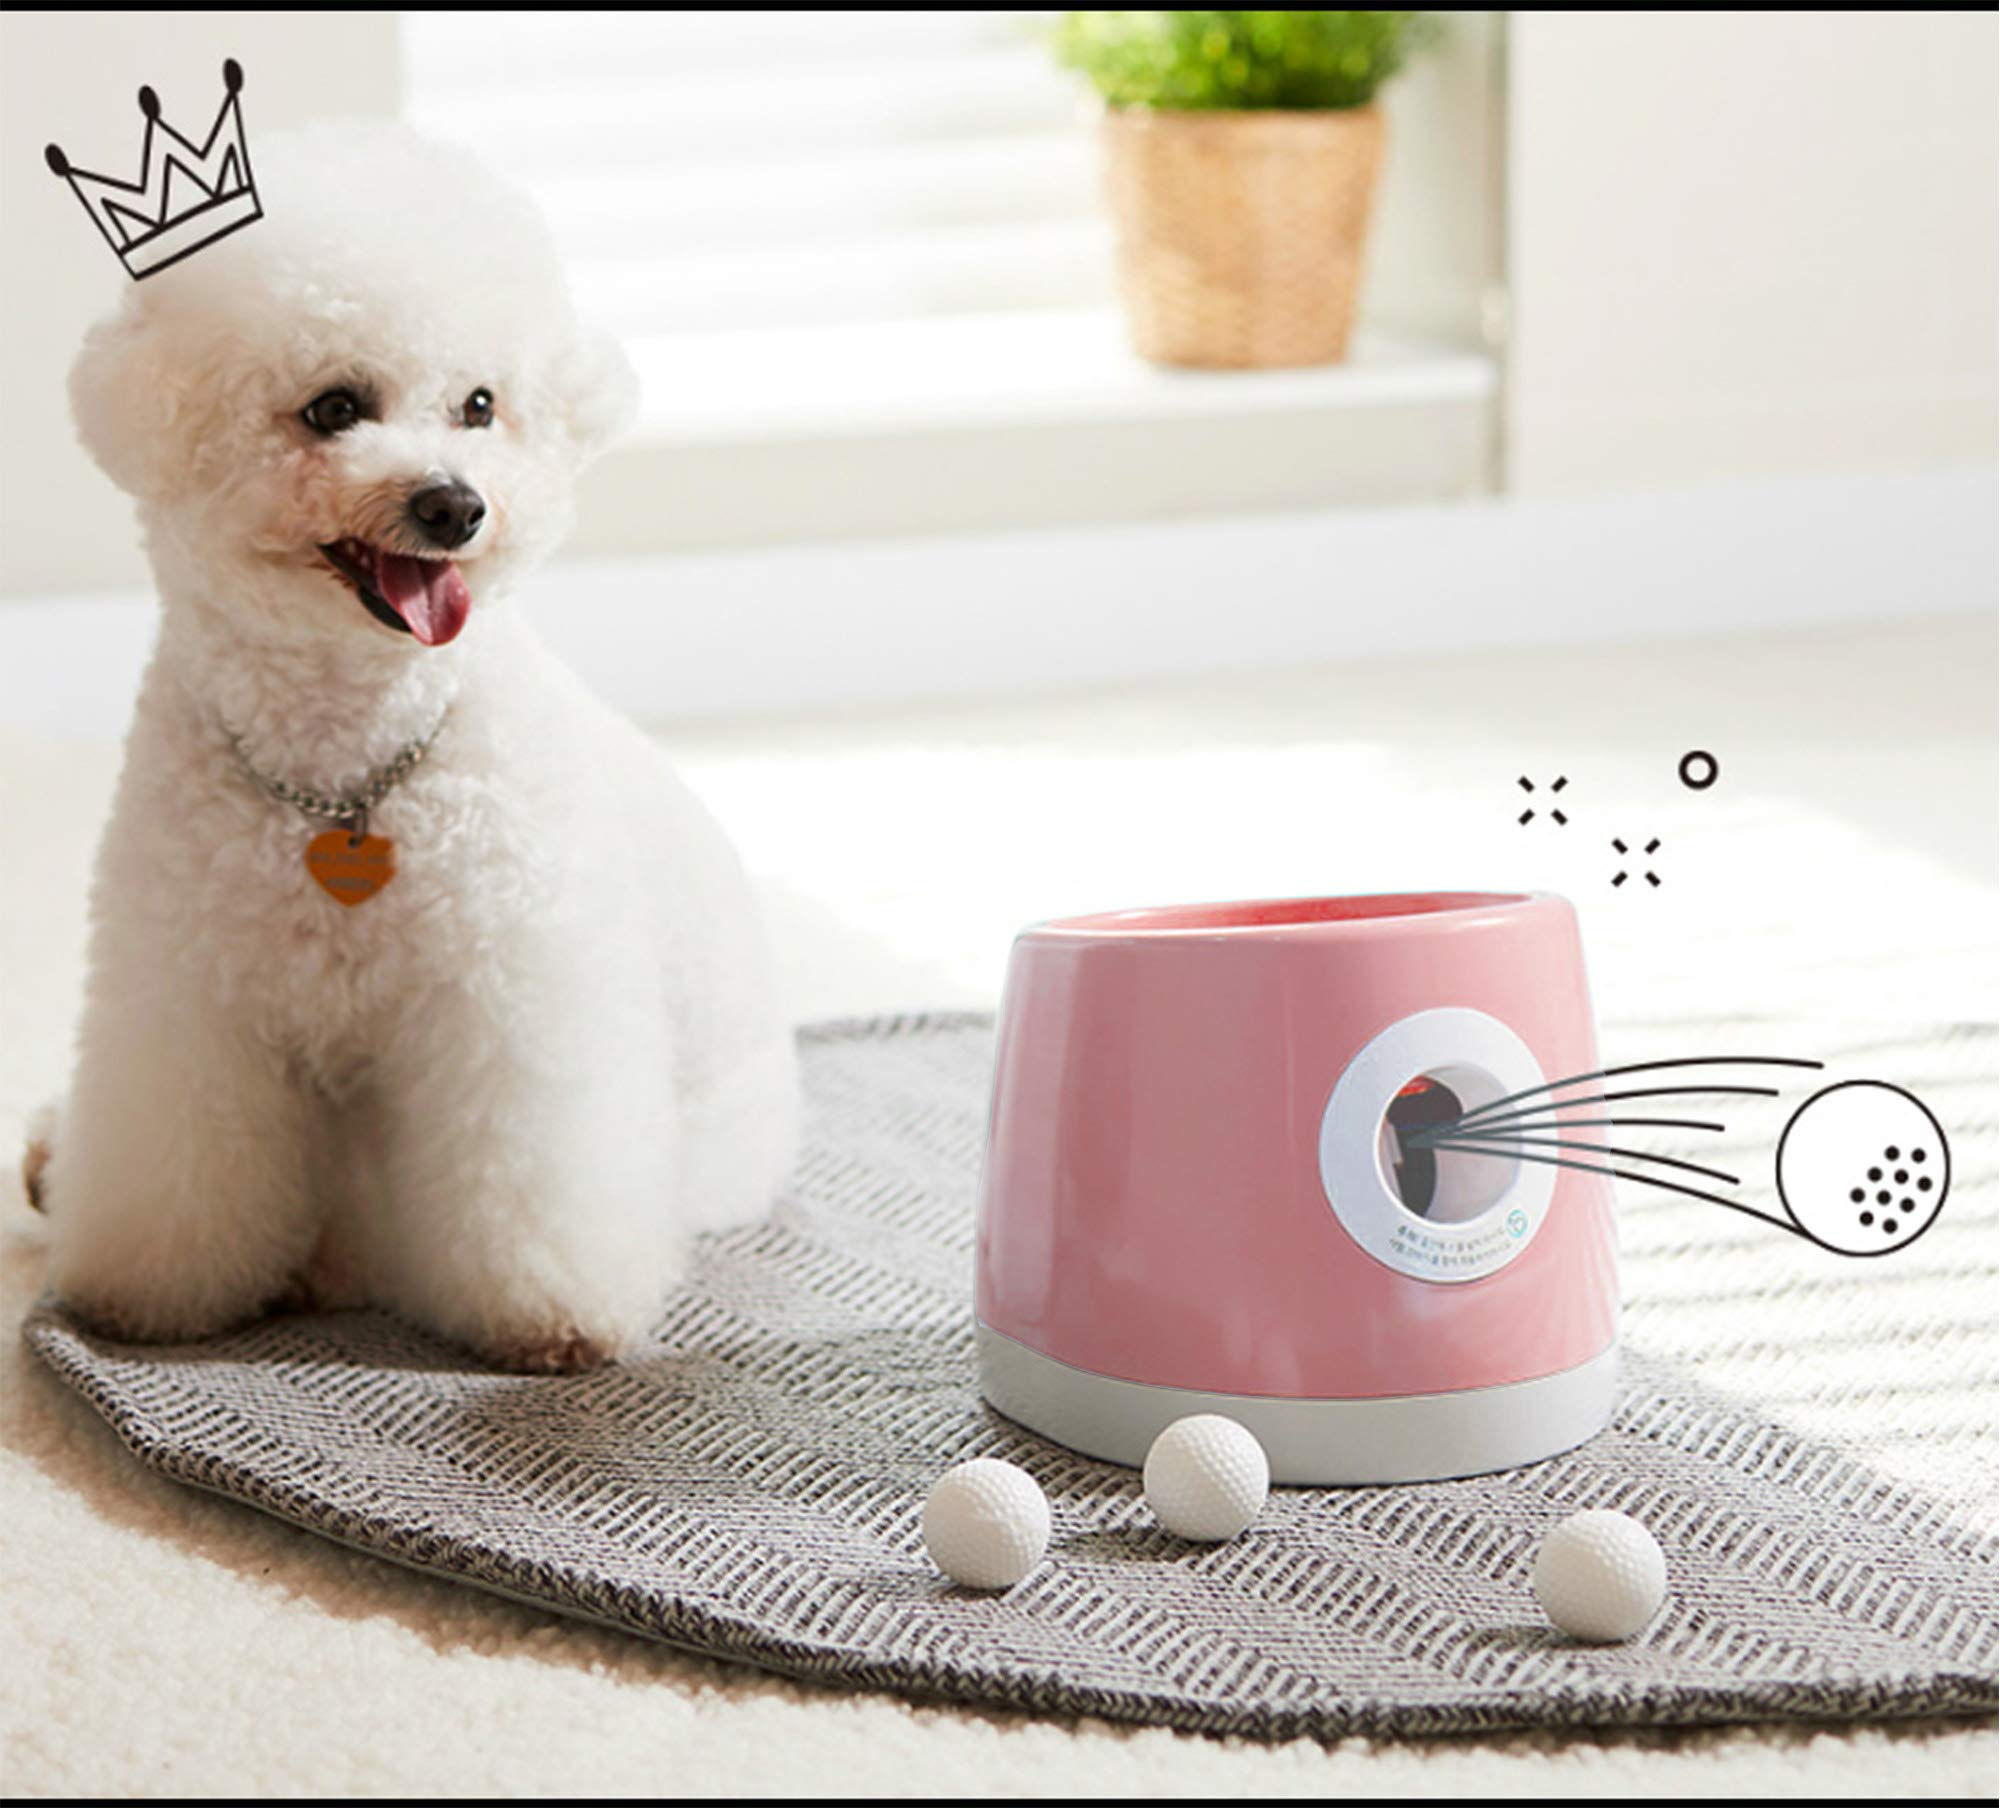 Doggyball DB-101 Automatic Ball Launcher Unlined Made in Korea Dog Toy Tennis Ball Throwing Machine for Dogs (Pink) by Doggyball